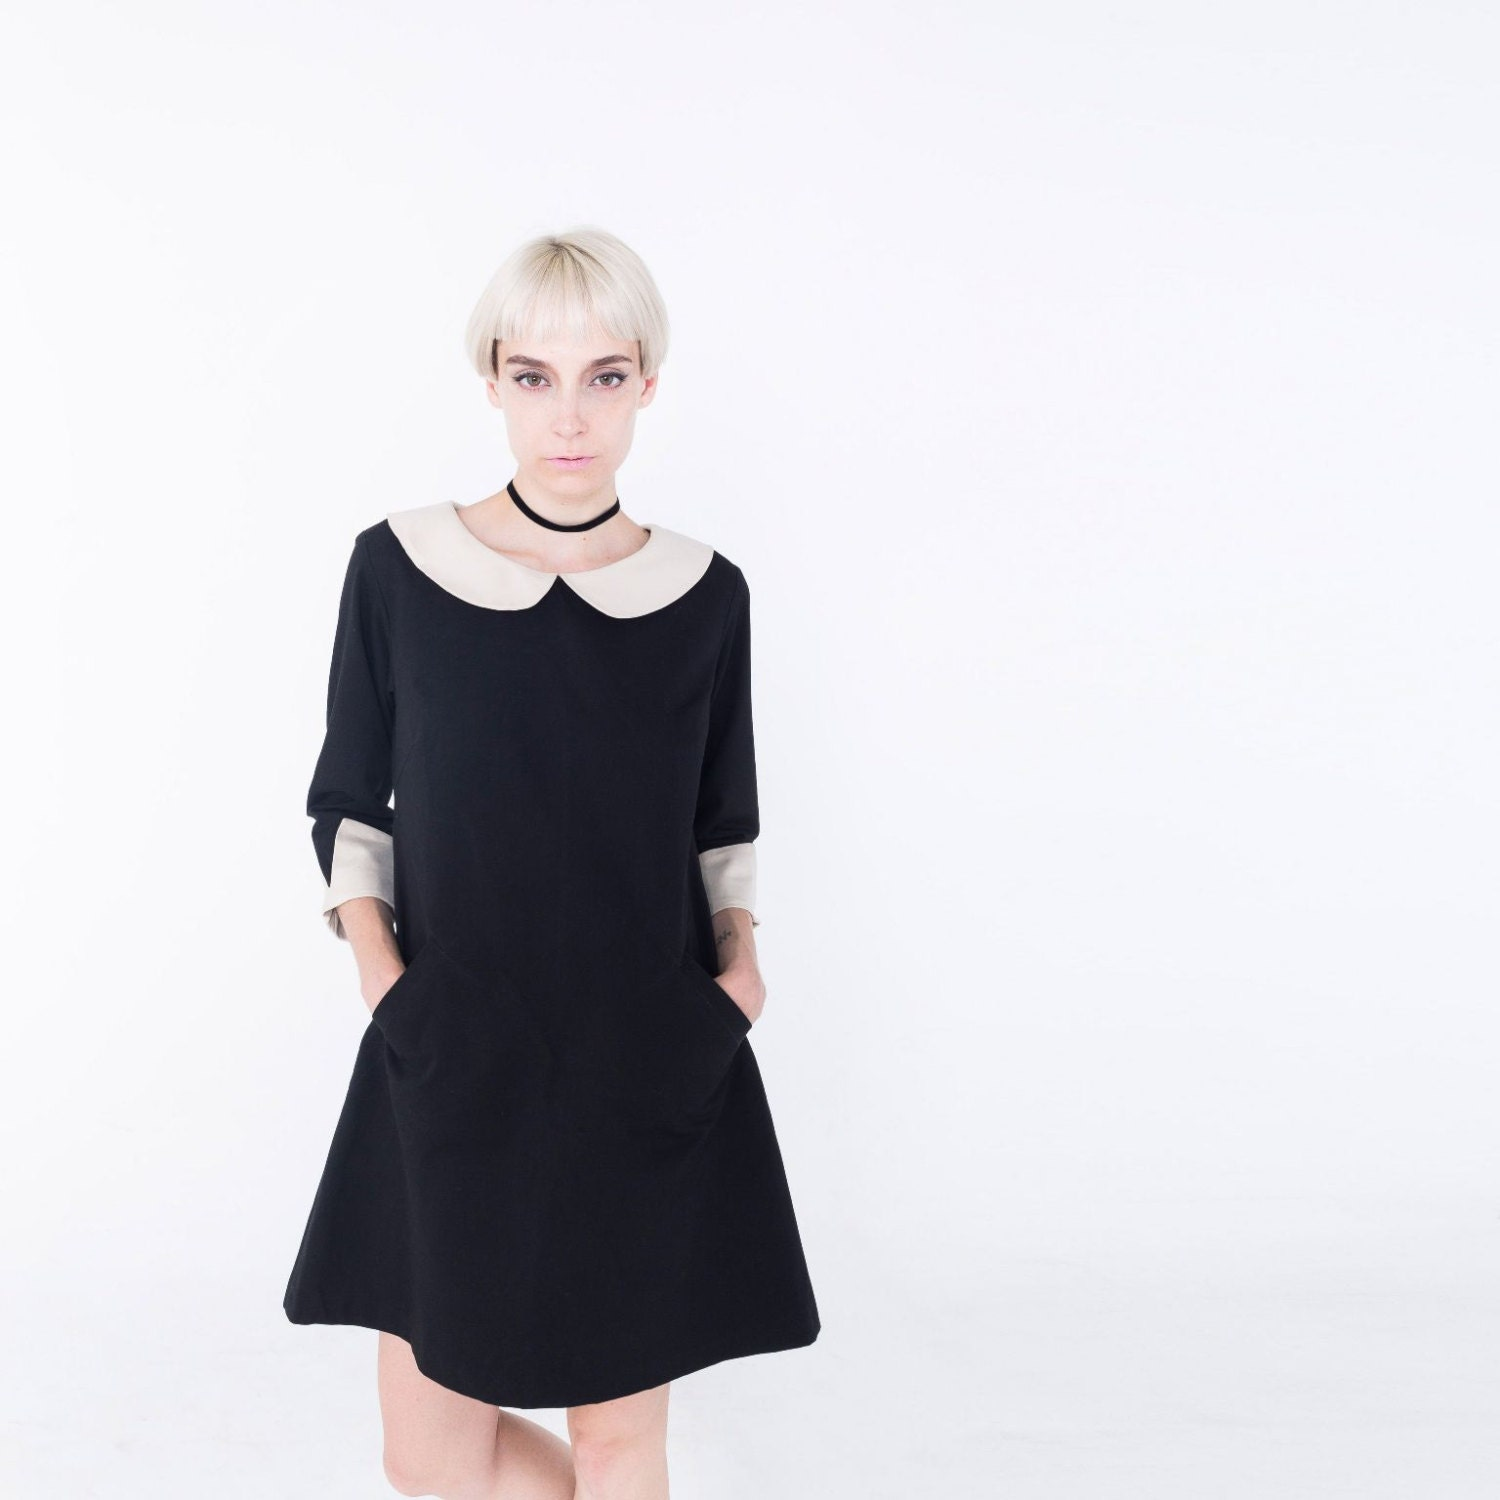 Black dress with white peter pan collar - Wednesday Addams Halloween Dress Costume Black Dress With White Round Or Square Collar